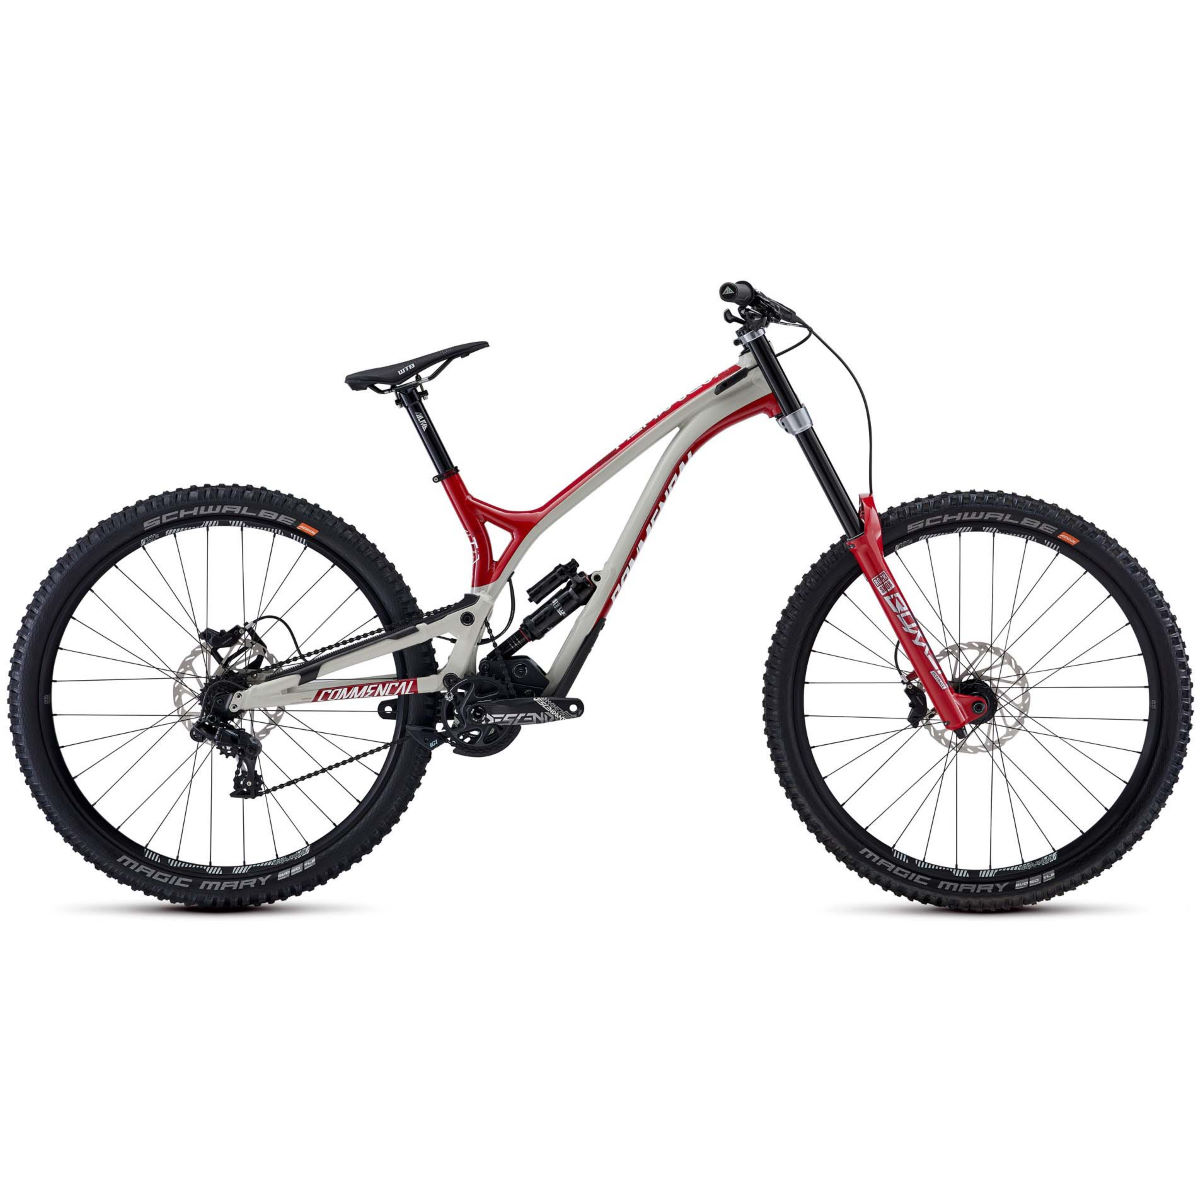 Commencal Commencal Supreme DH 29 Team Suspension Bike (2020)   Full Suspension Mountain Bikes